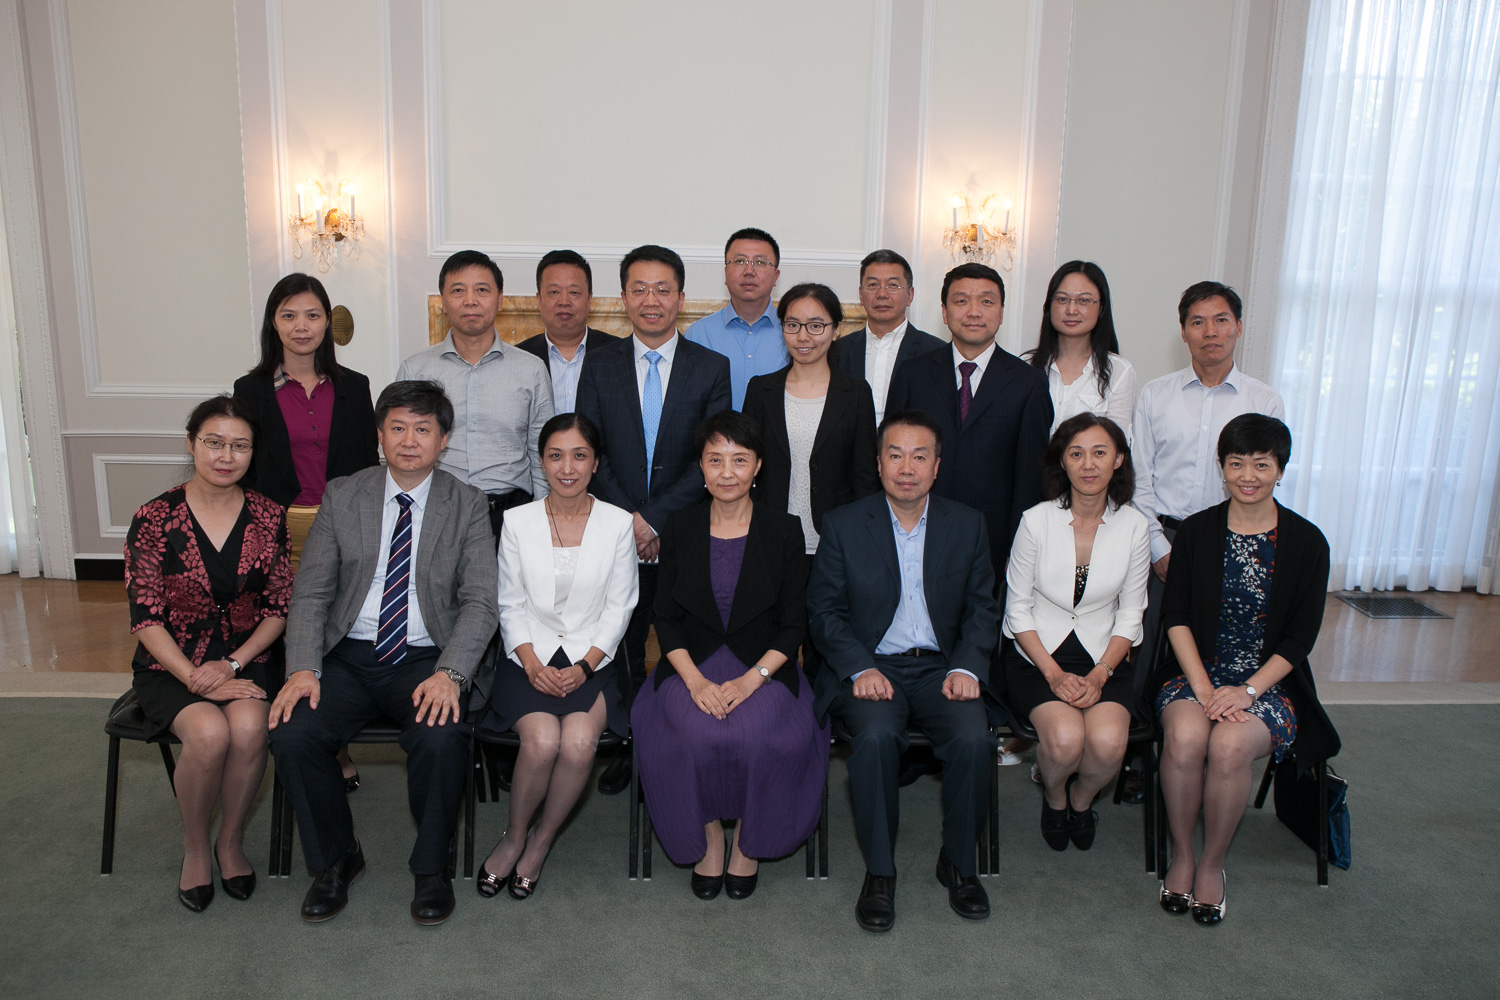 20 senior decision-makers from hospitals and national and local healthcare bureaus in China. John Boal Photography